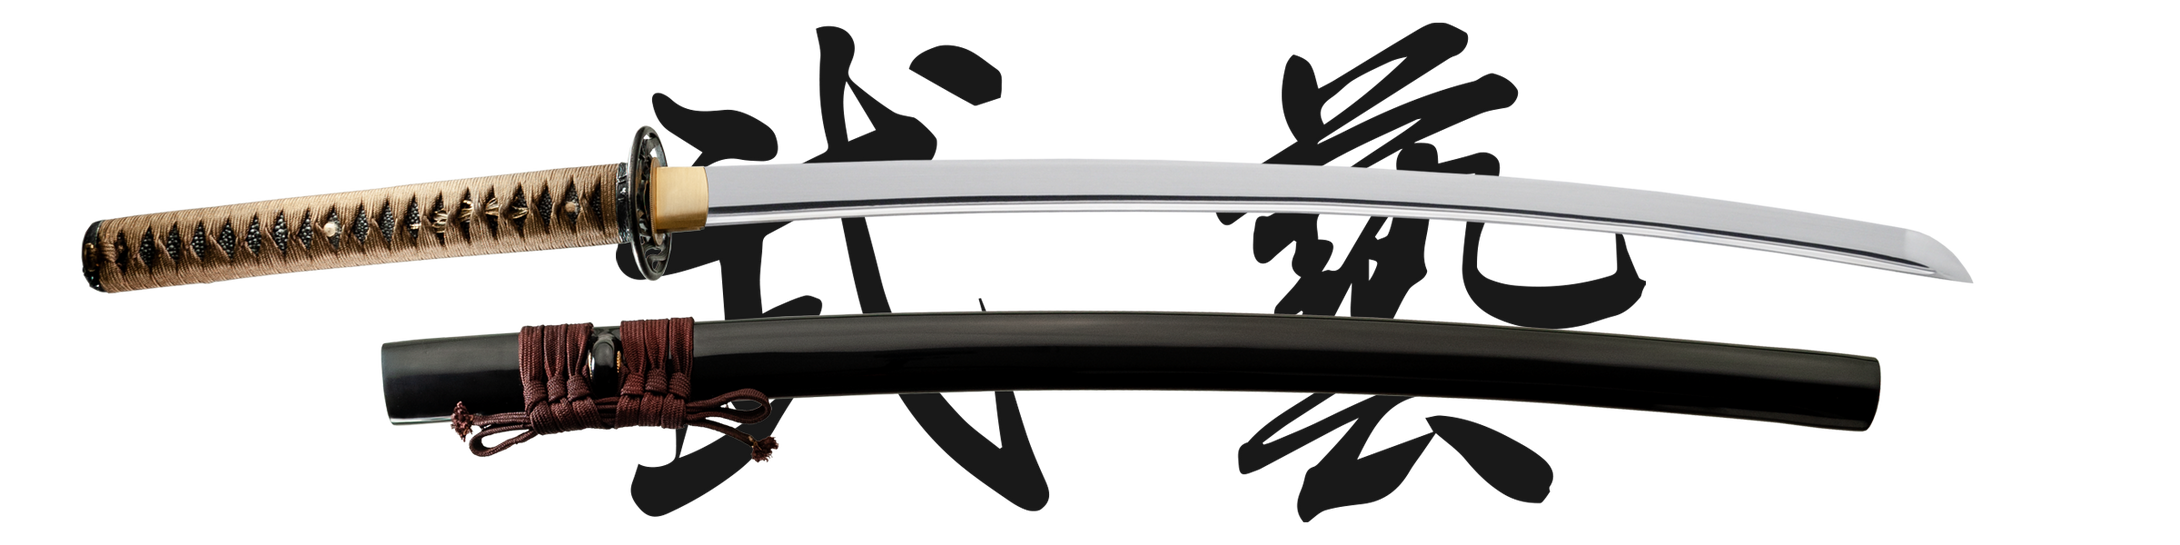 Dragonfly Katana - 5160 Steel with Bohi